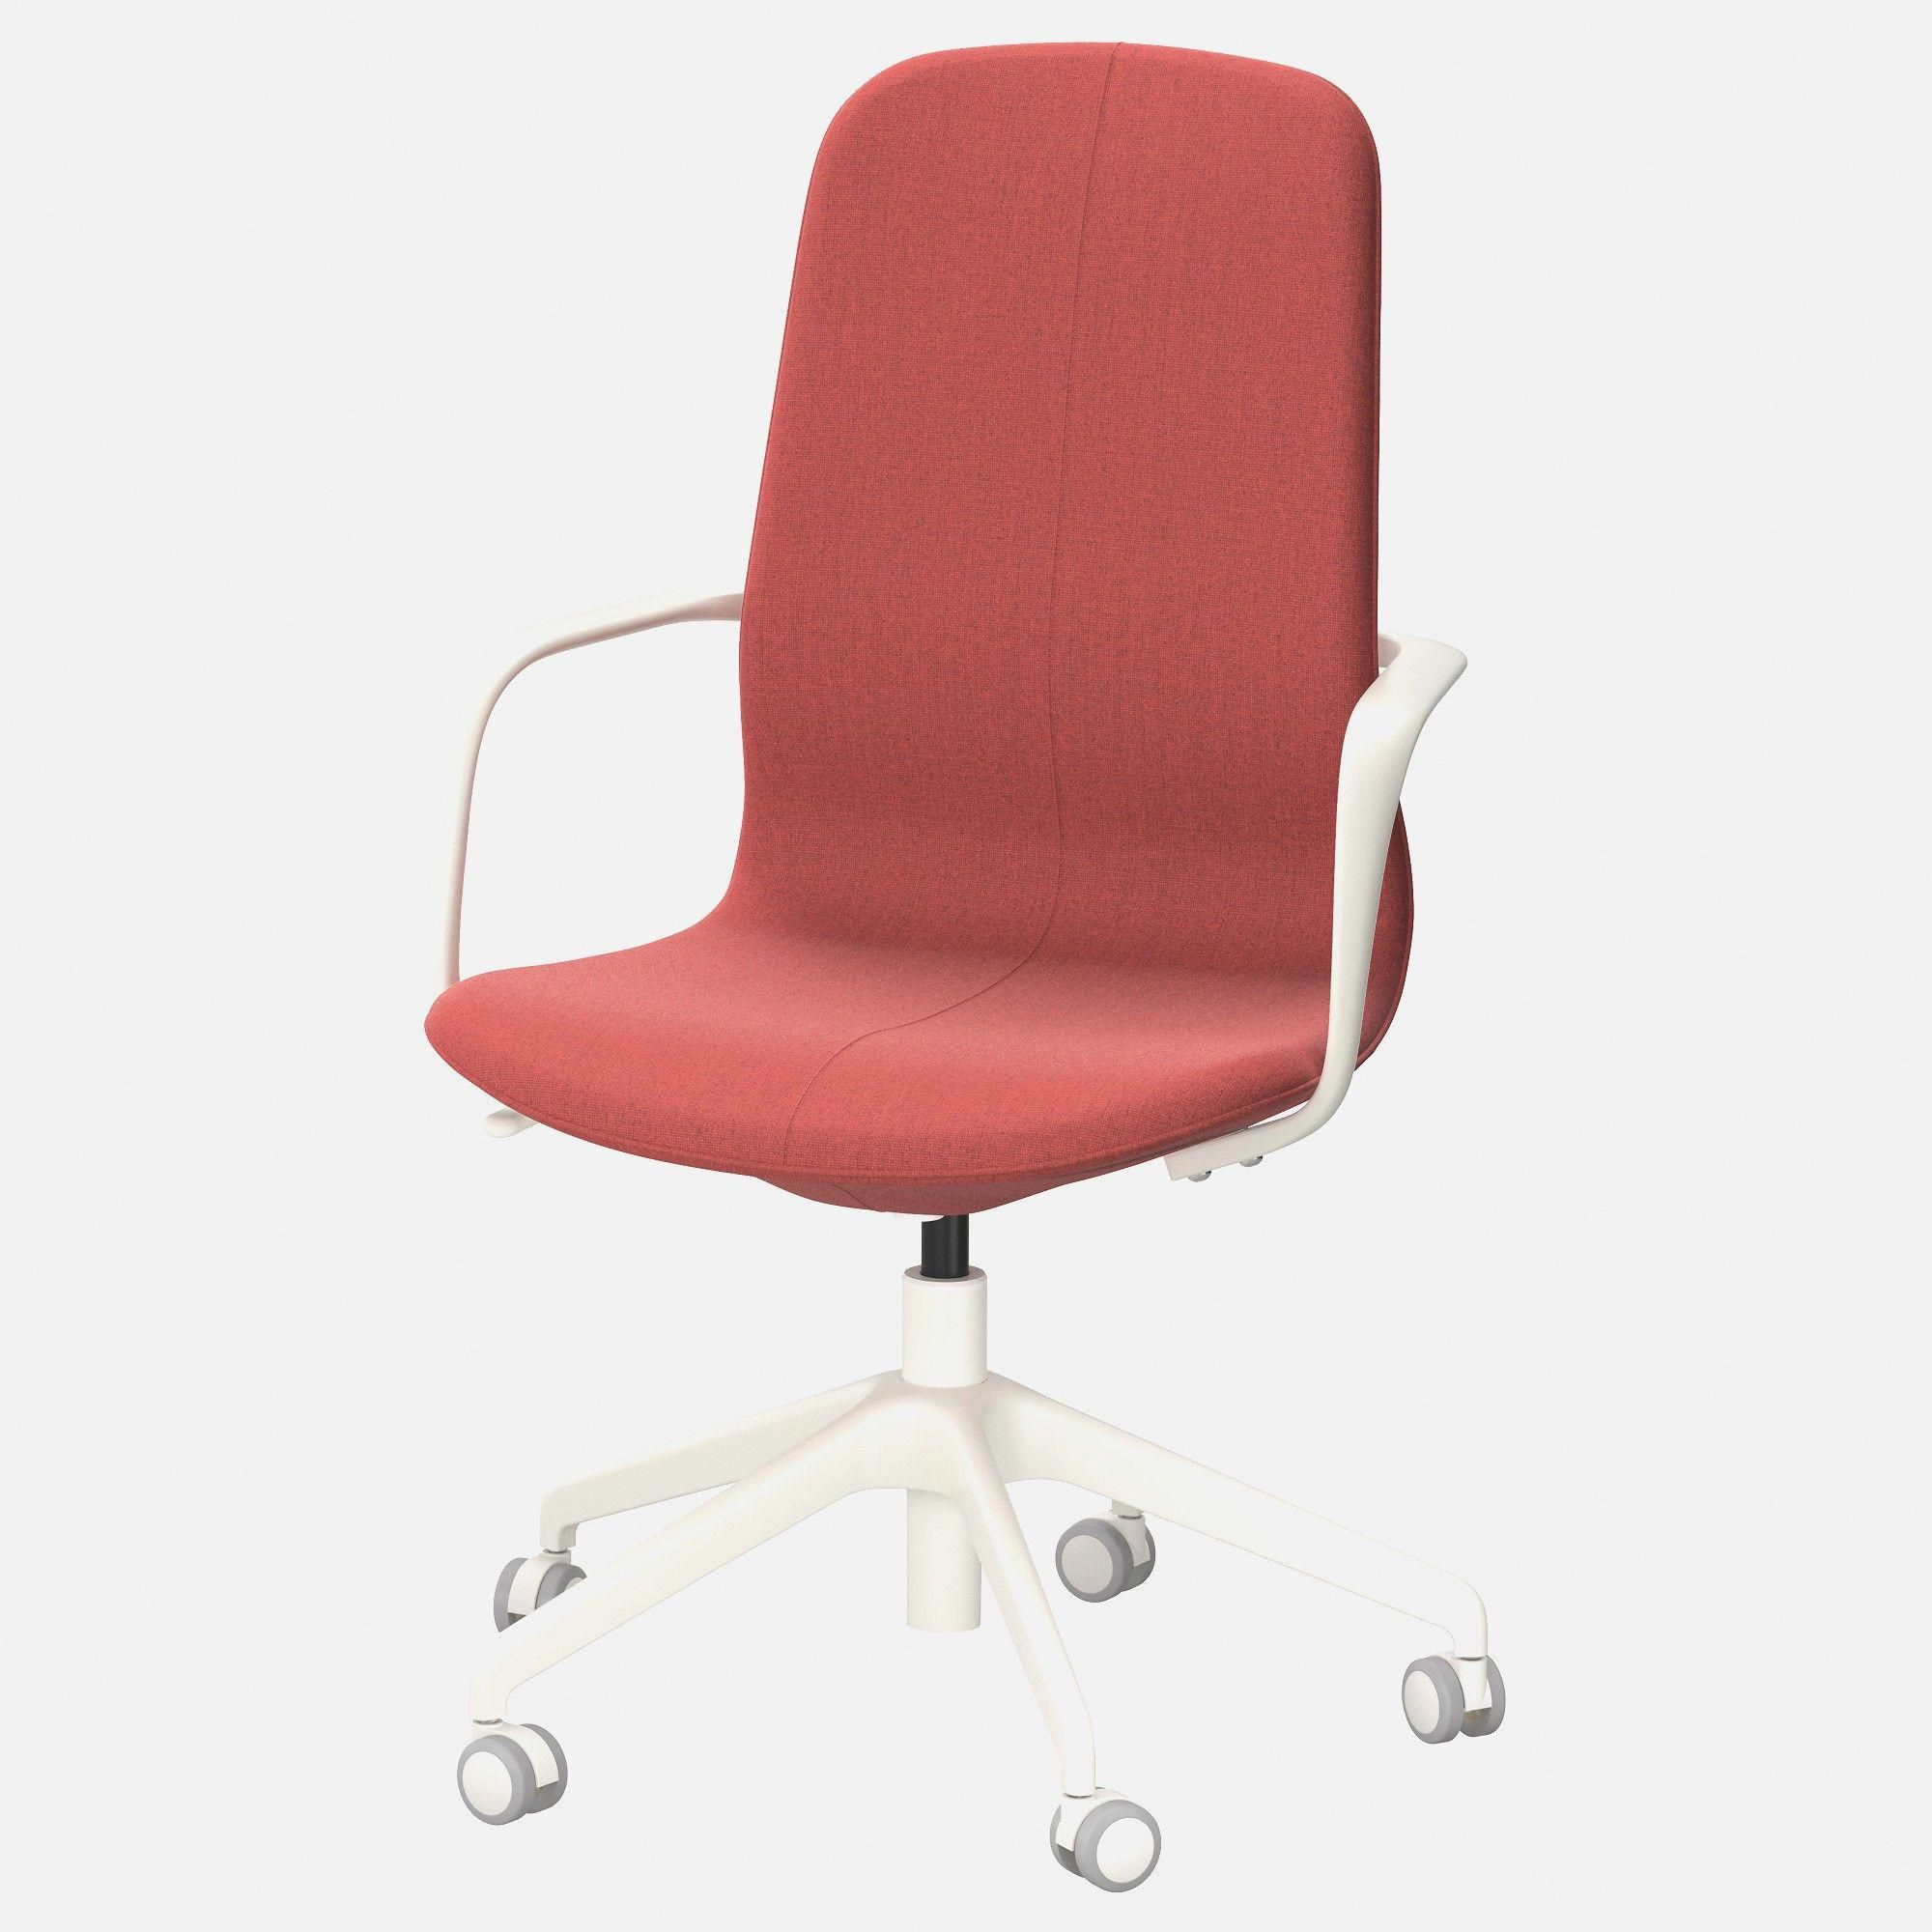 armless office chairs with wheels armless desk chair no wheels rh pinterest com